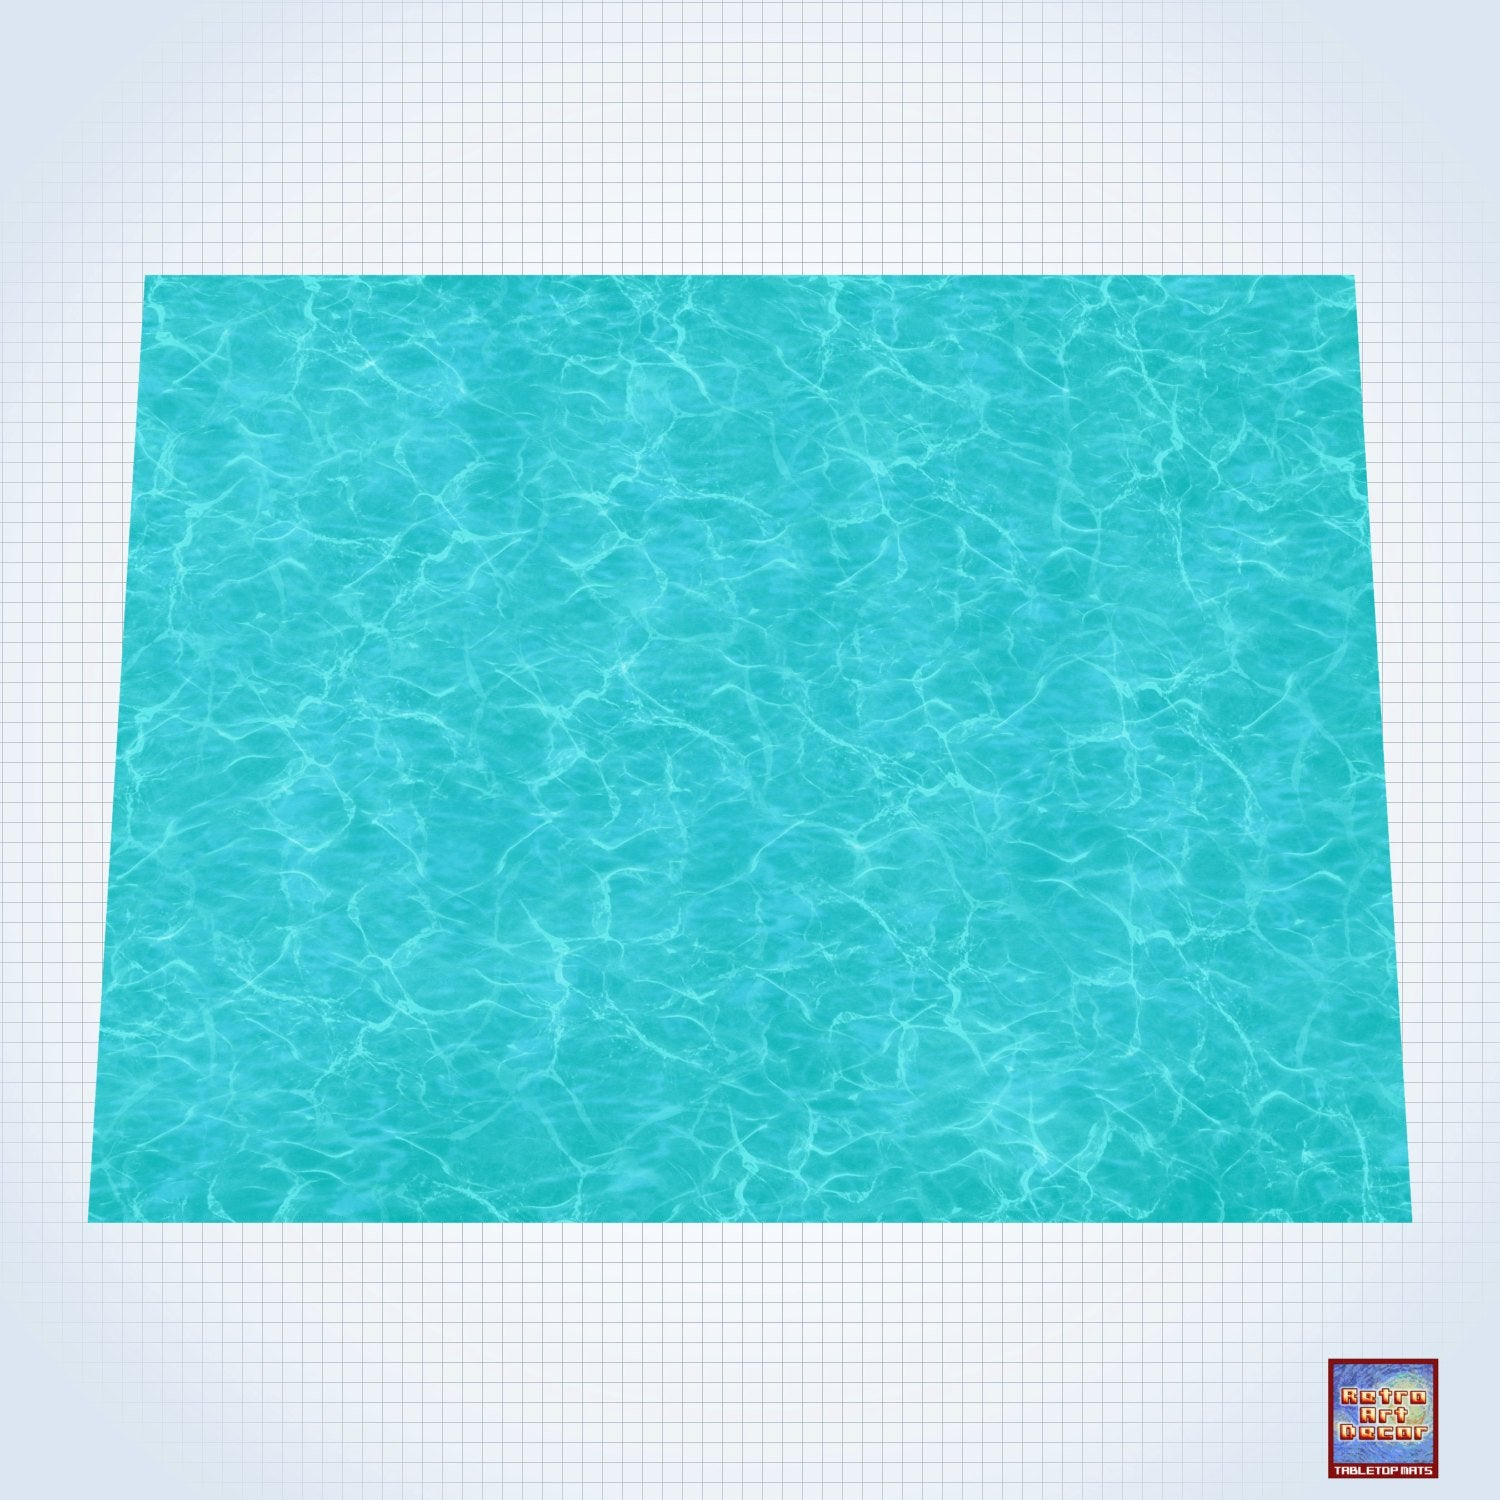 "Tropical Waters - #GM202 - 60"" x 80"" (4' x 6' plus) Fleece Table Top Gaming Mat"